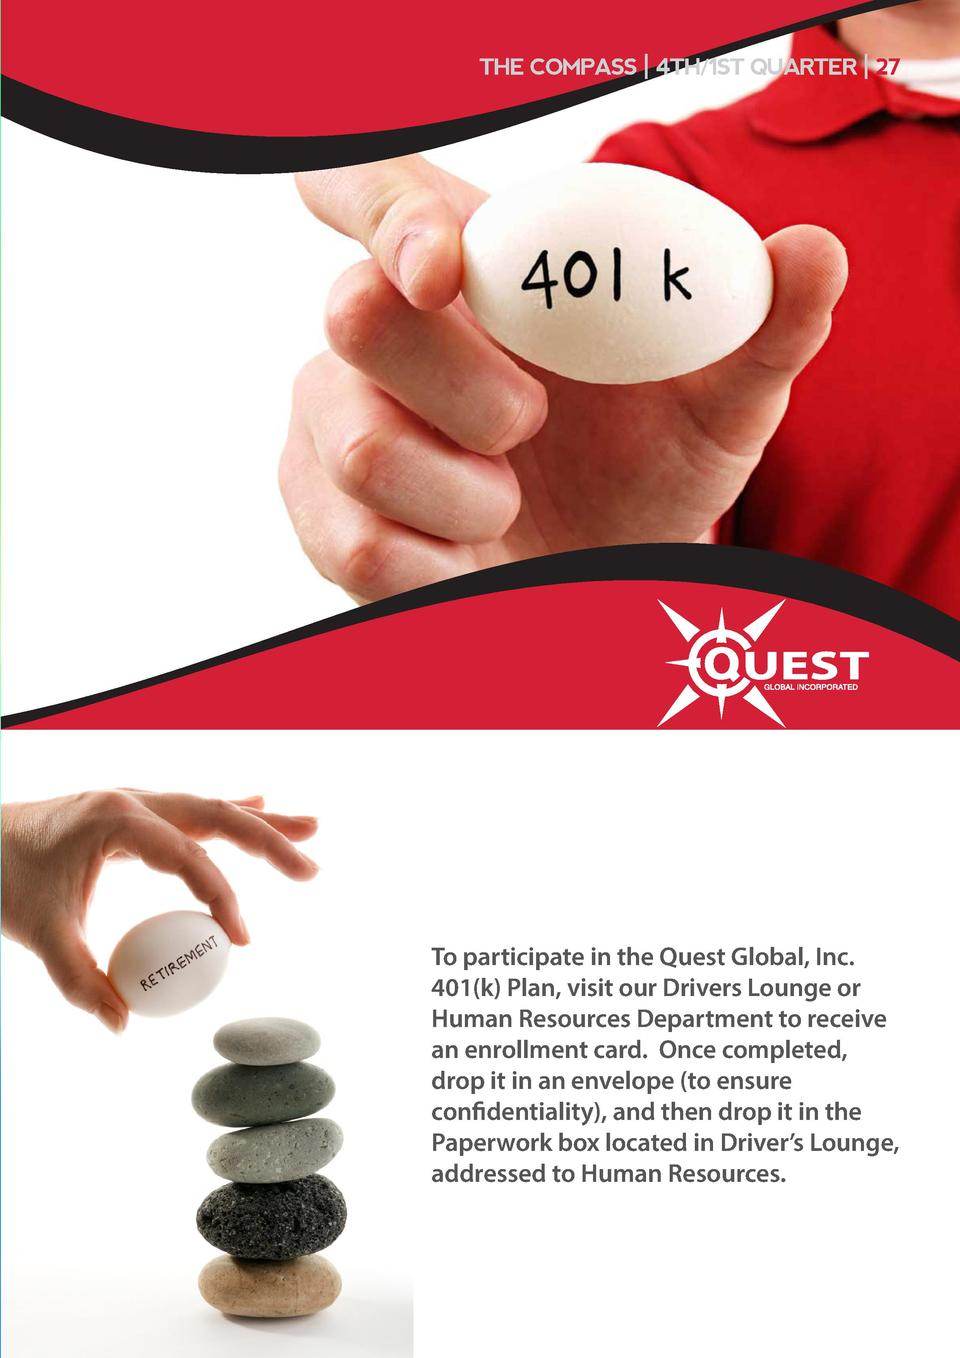 THE COMPASS   4TH 1ST QUARTER   27  To participate in the Quest Global, Inc. 401 k  Plan, visit our Drivers Lounge or Huma...